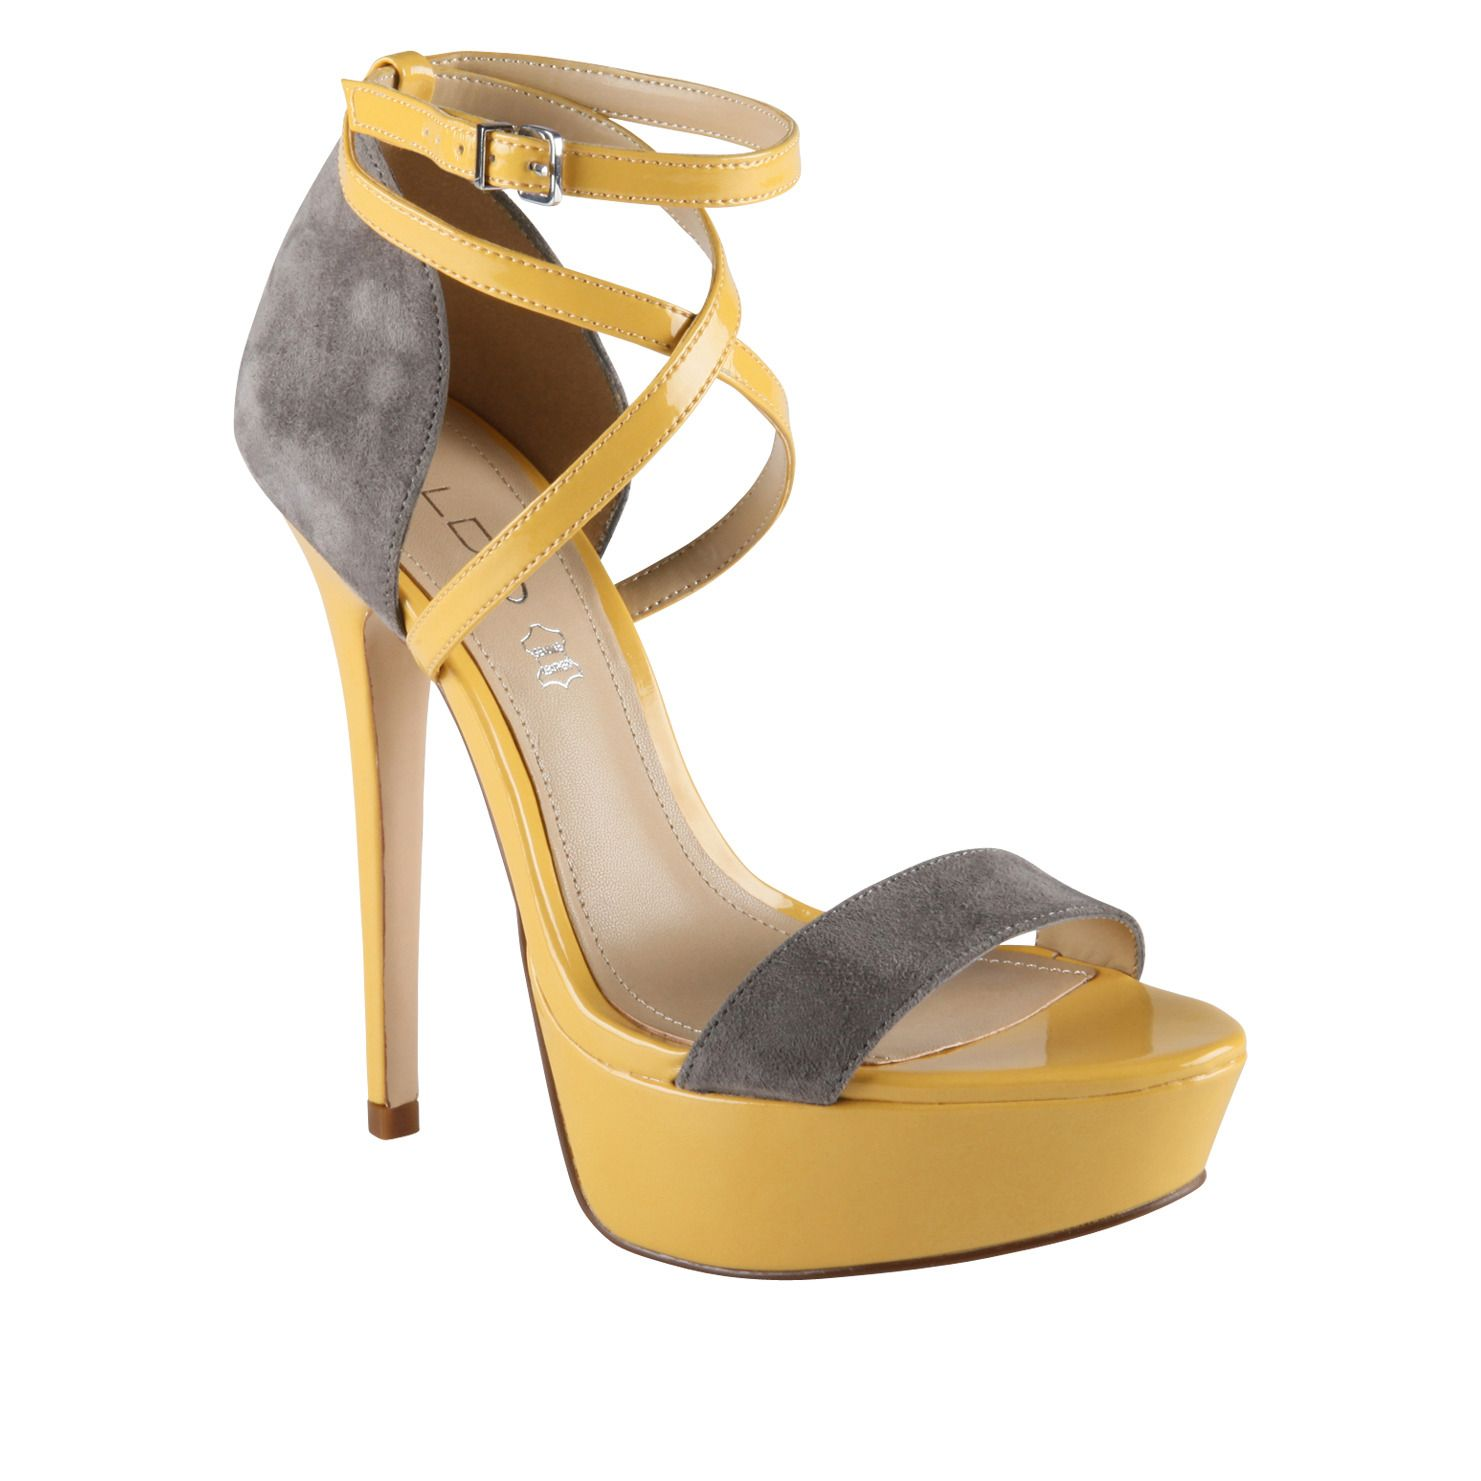 904220152bd PLAYAS - Clearance s heels women s sandals for sale at ALDO Shoes ...